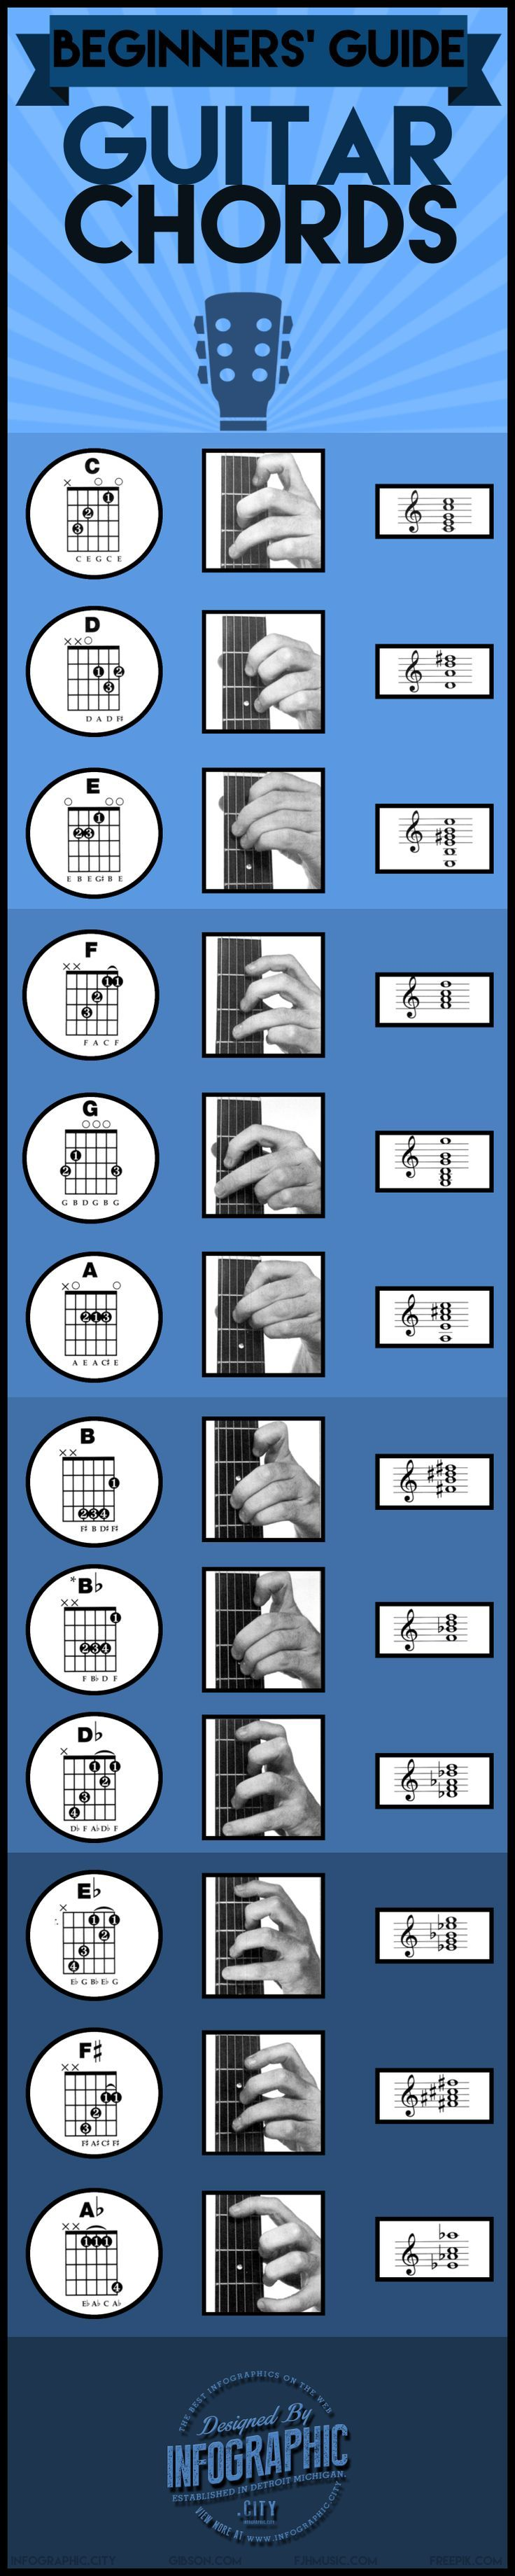 A Beginners Guide To Guitar Chords Infographic   Cordas ...